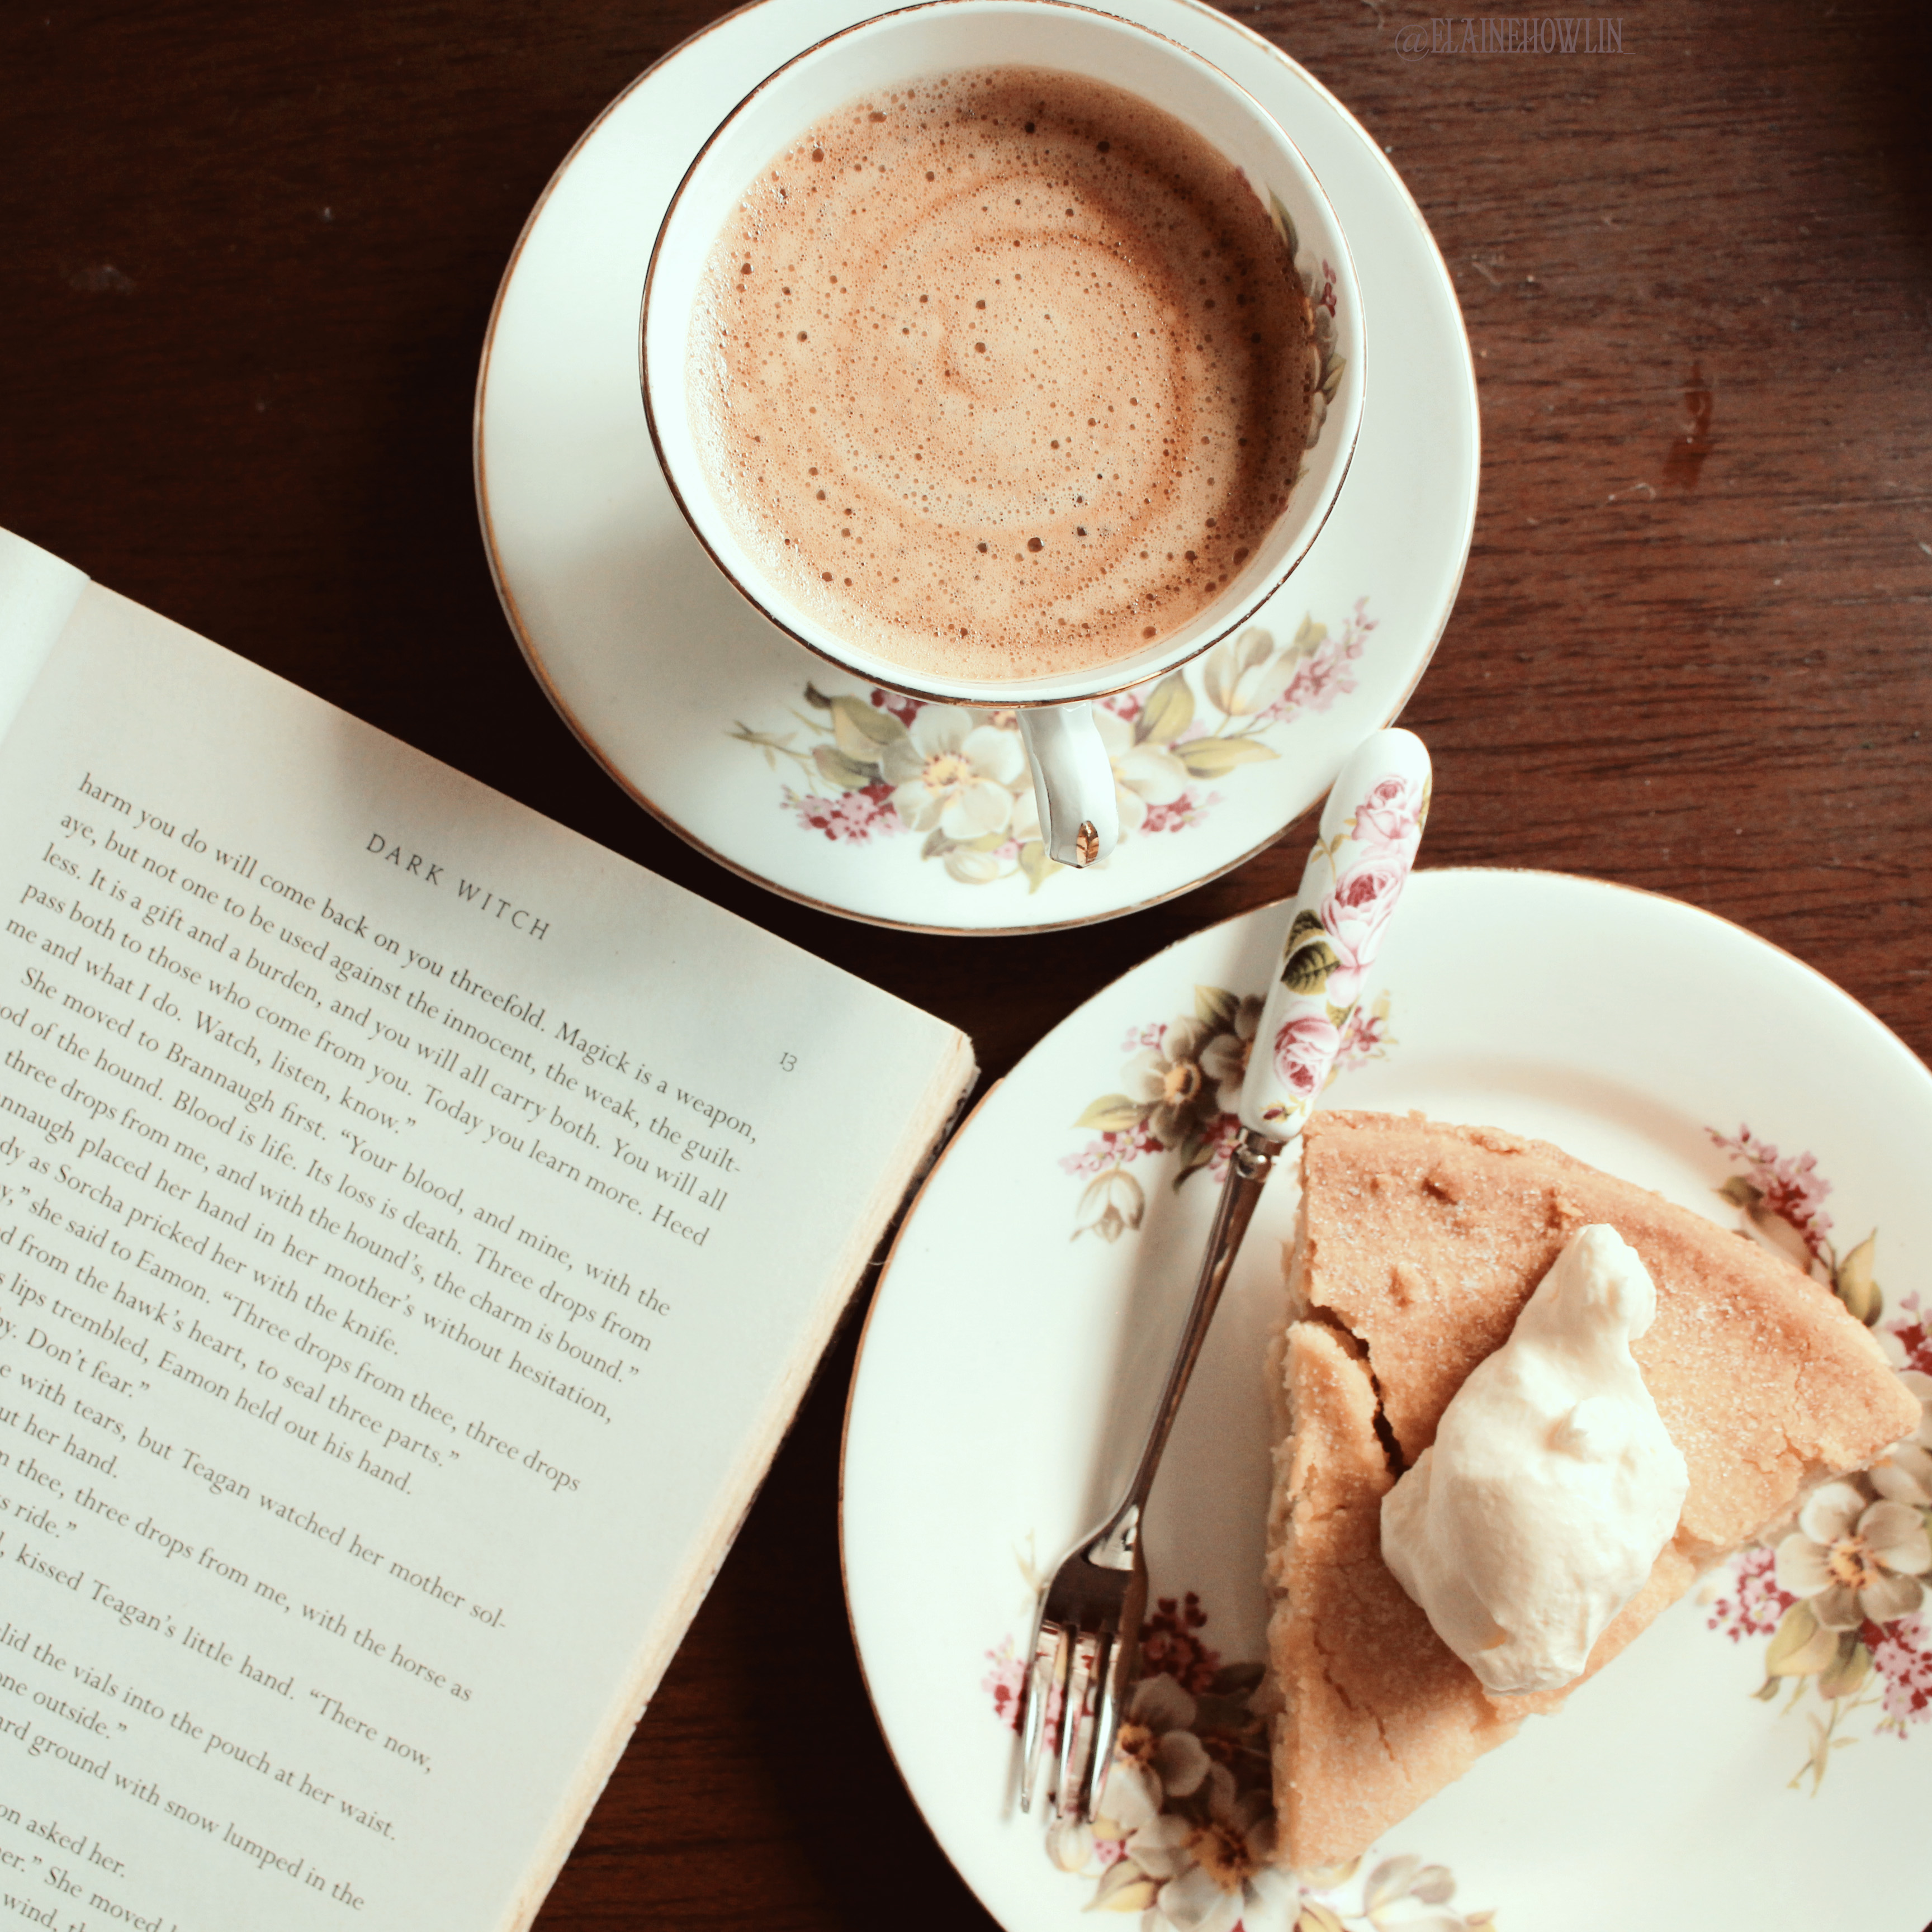 Coffee, apple tart and a book